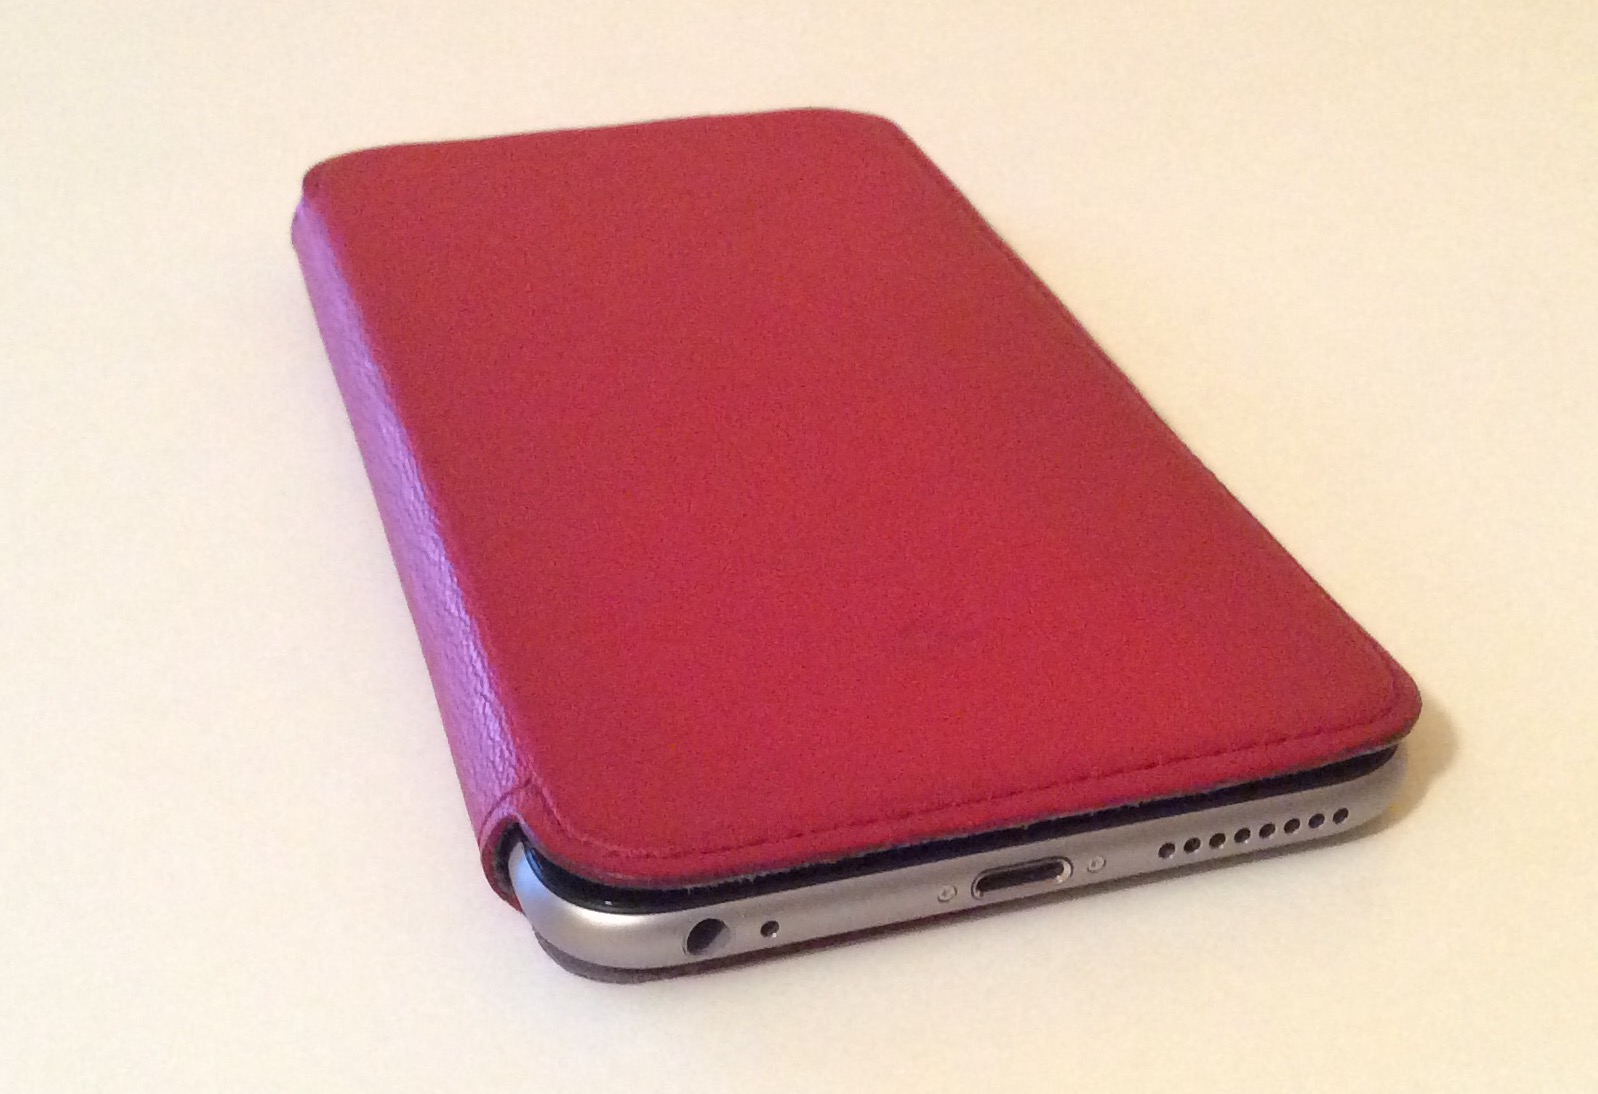 Twelve South SurfacePad for iPhone 6 Plus image 00022